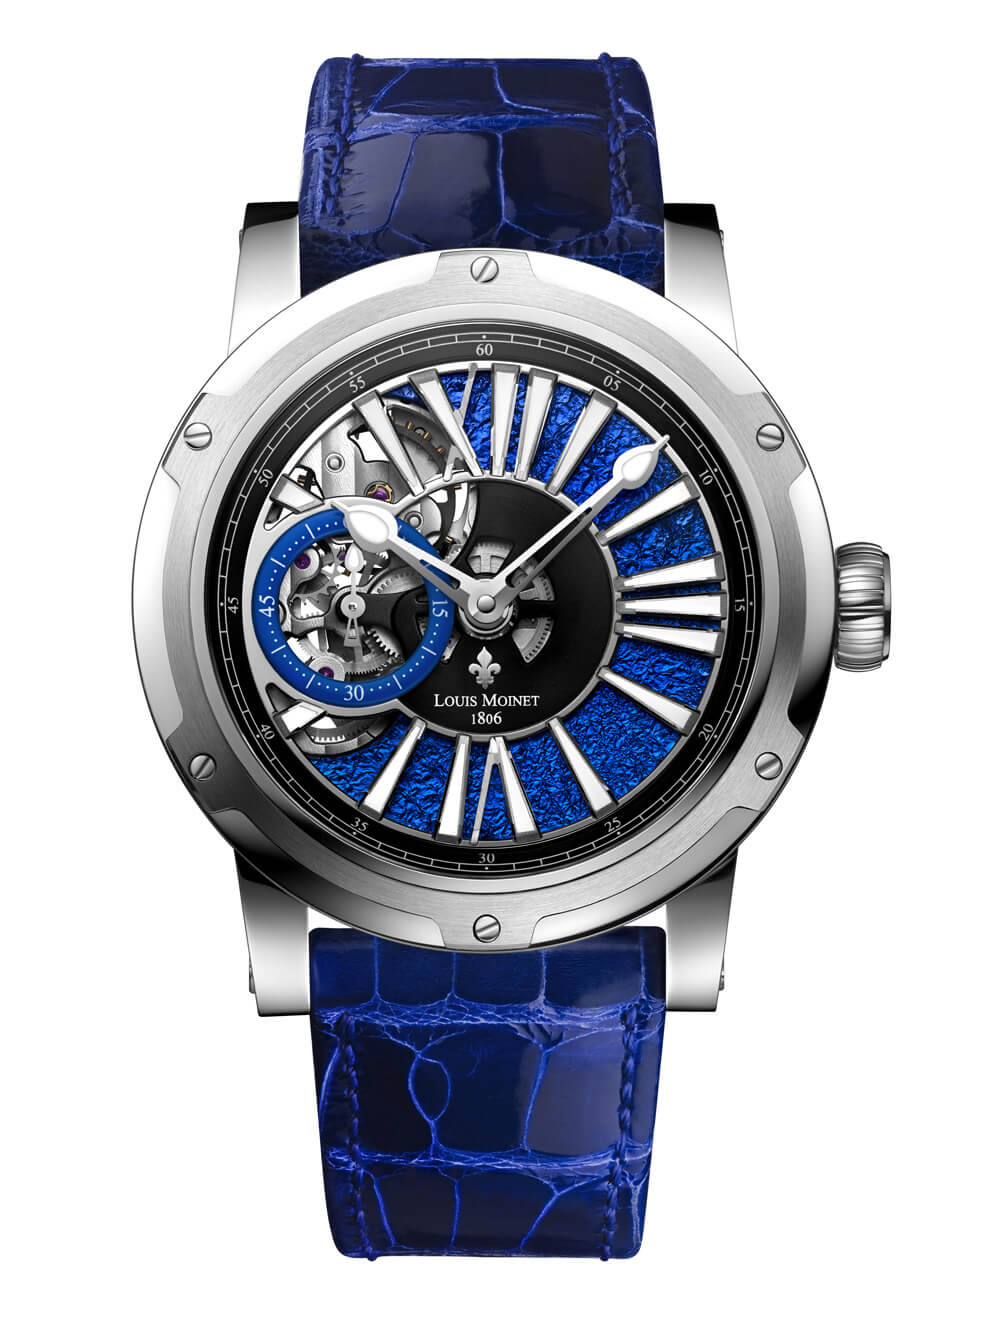 Louis Moinet Metropolis Magic Blue timepiece with distinctive bezel and unusual dial